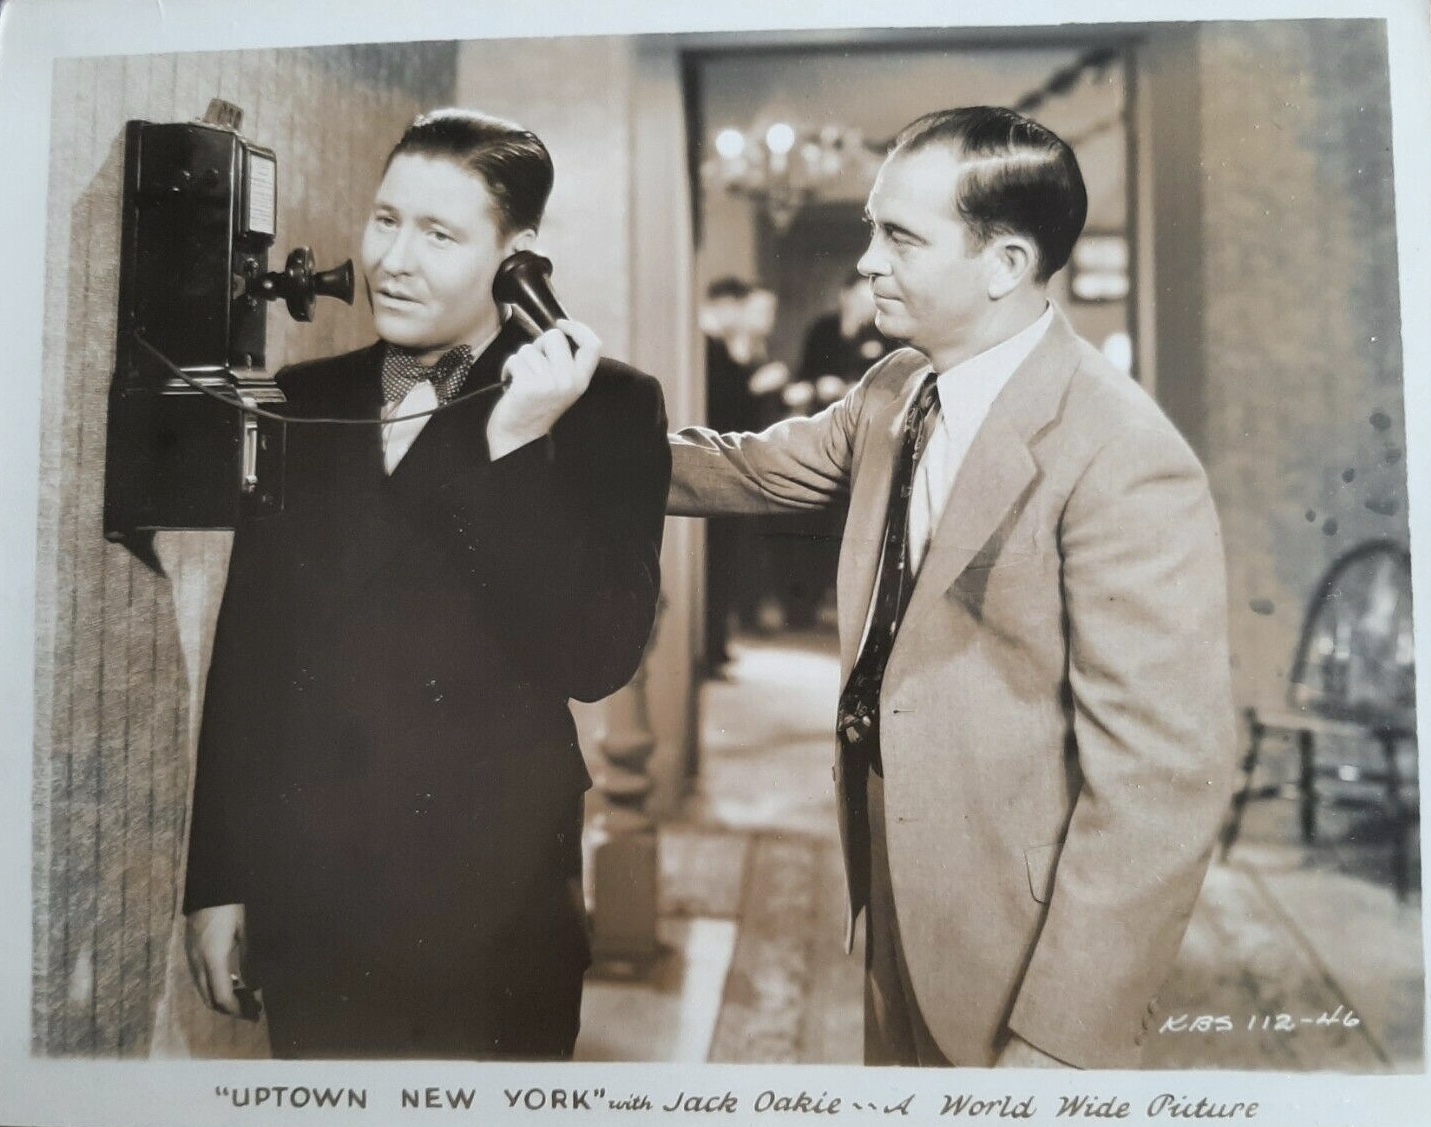 George Cooper and Jack Oakie in Uptown New York (1932)